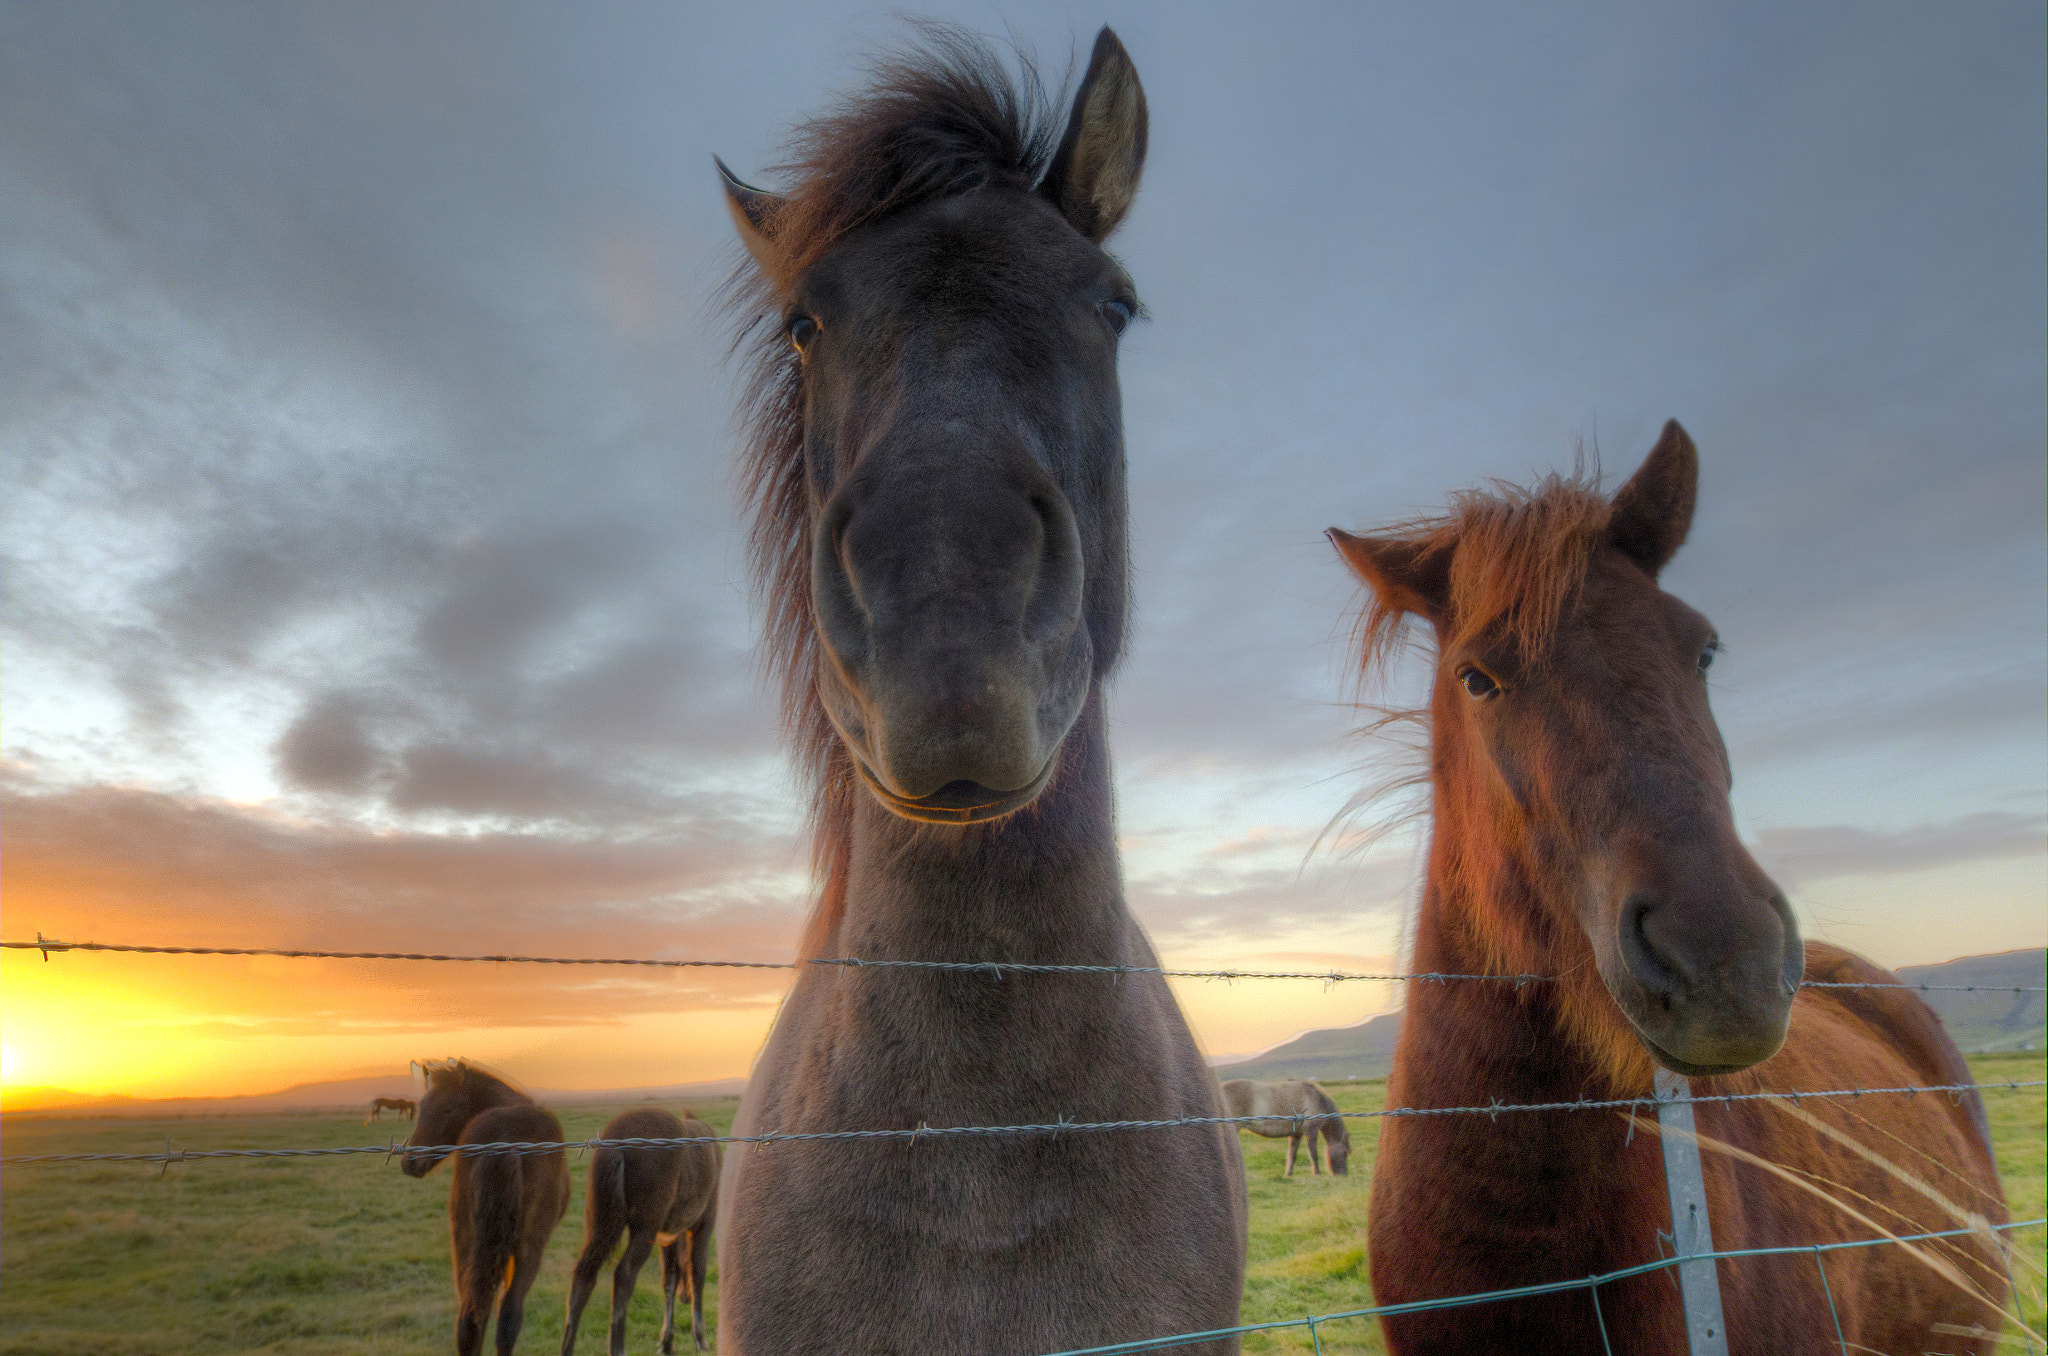 Photograph Horses, Iceland  by Ido Lempert on 500px